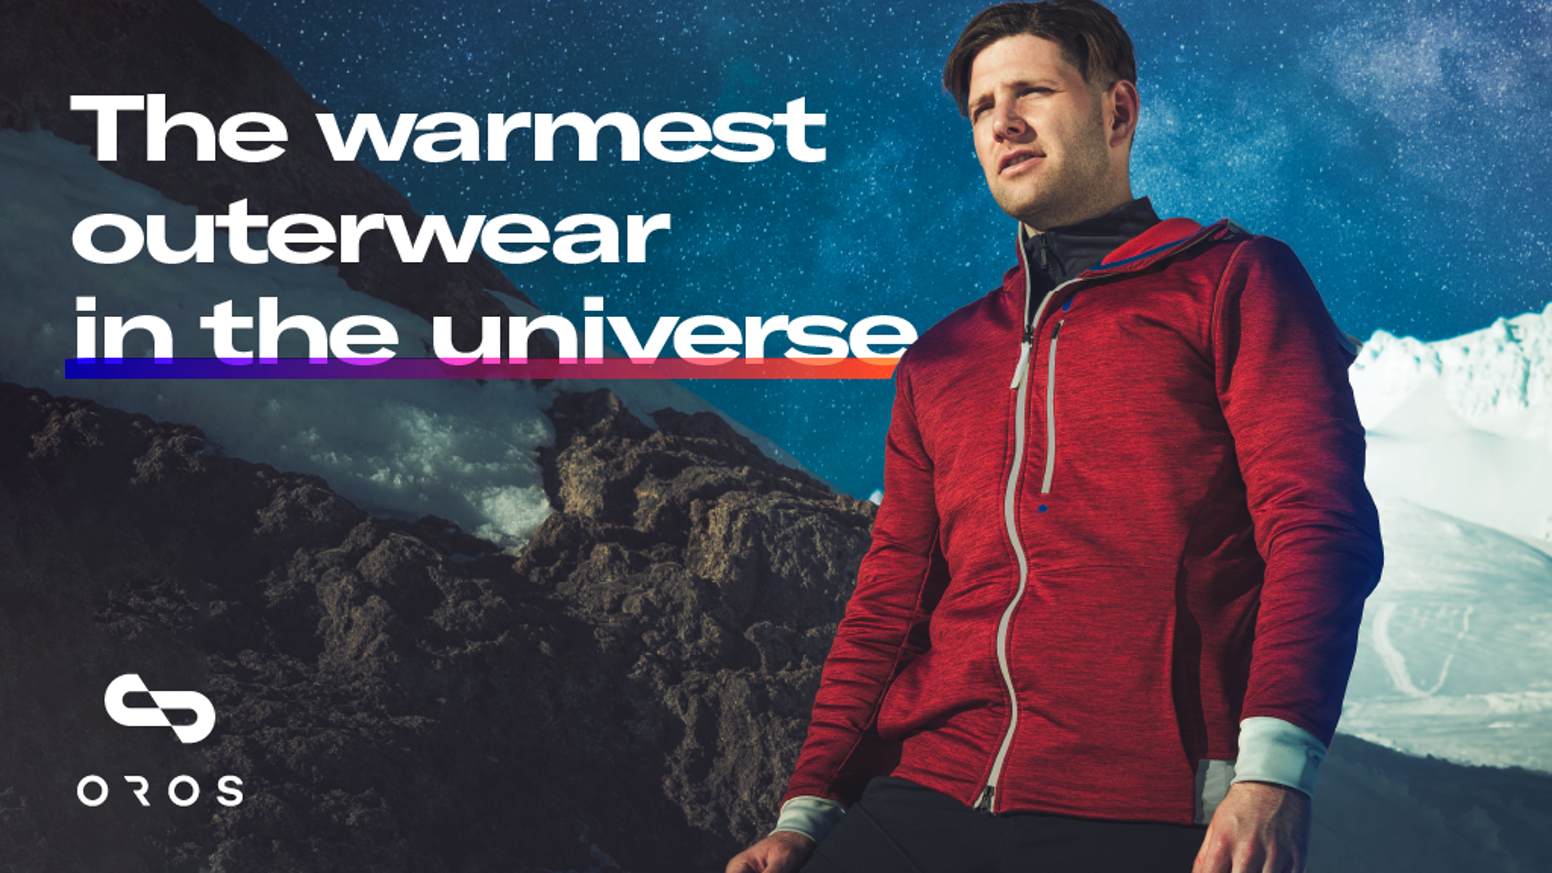 Apparel powered by NASA's insulation, aerogel. Tested in Space - Designed for your adventures on Planet Earth.